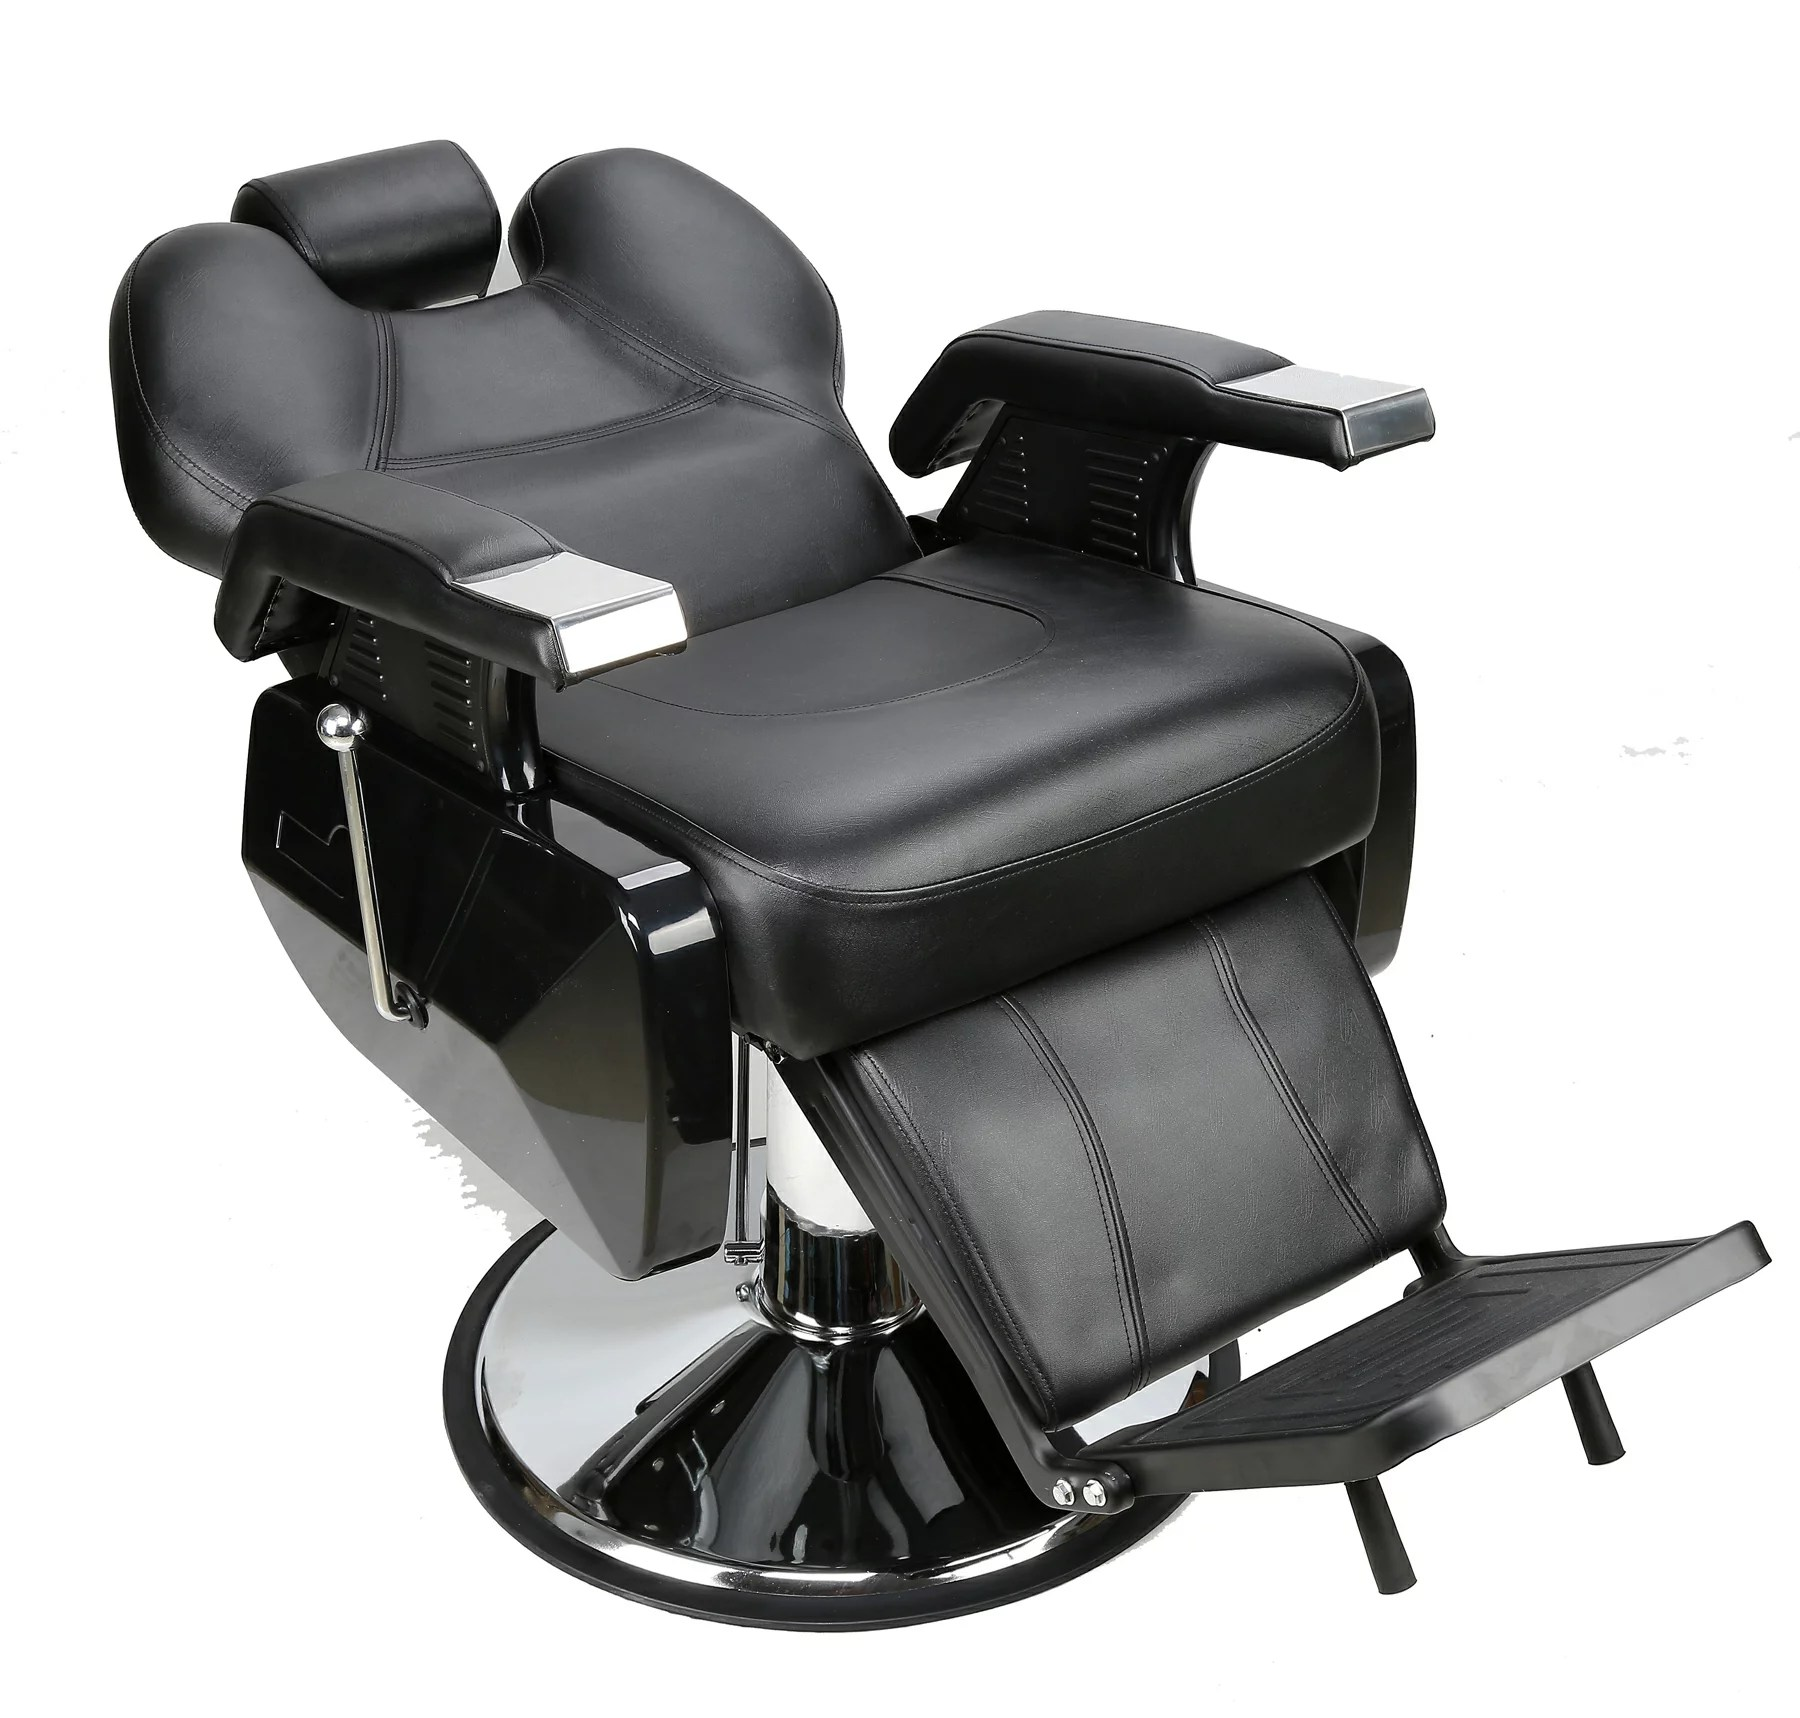 Barber Chair Parts Mcombo Barberpub All Purpose Hydraulic Recline Salon